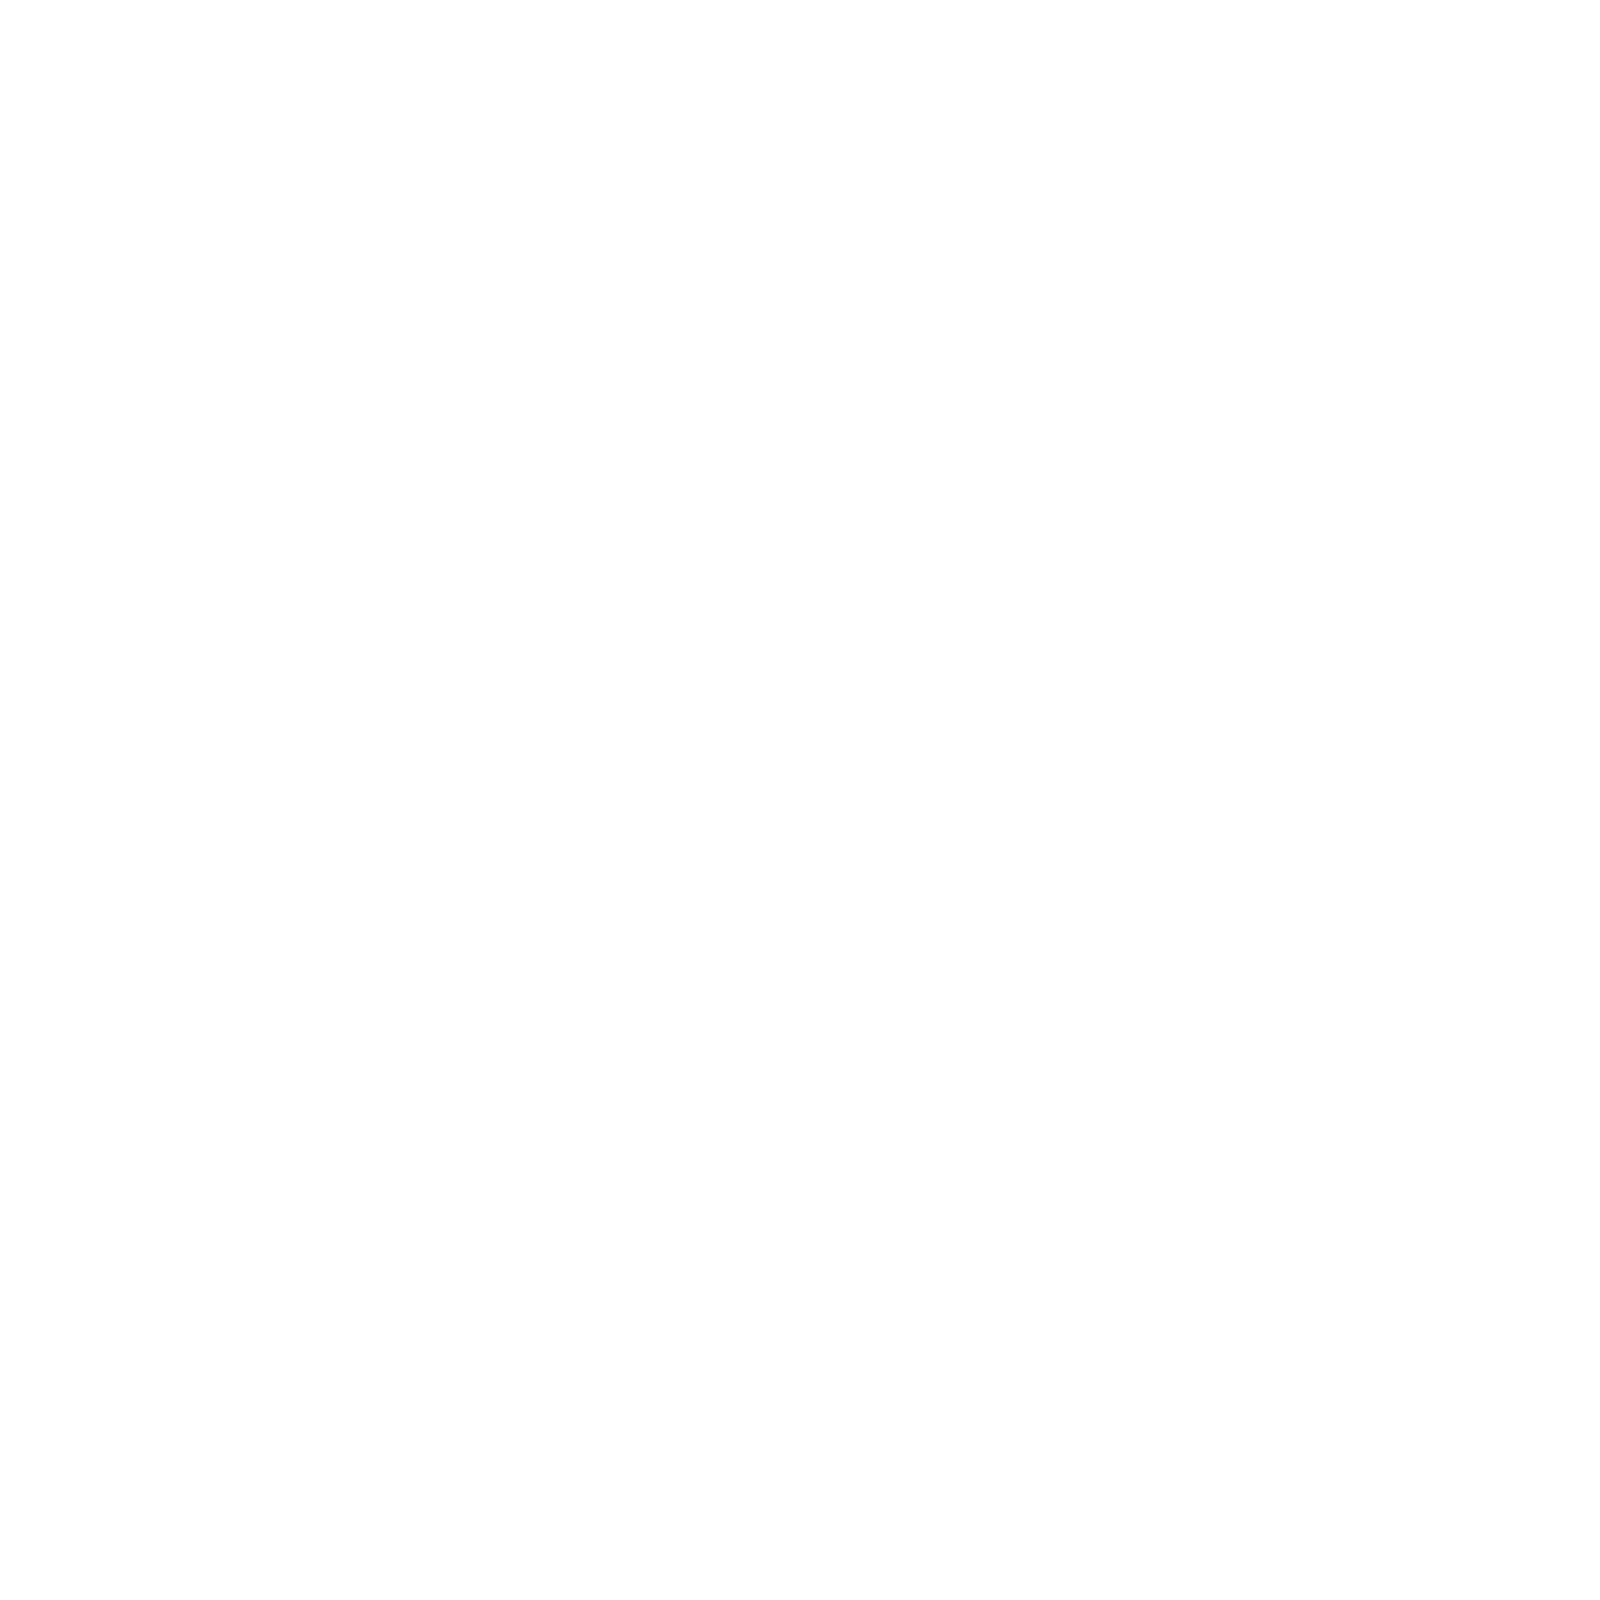 Shared cPanel Hosting